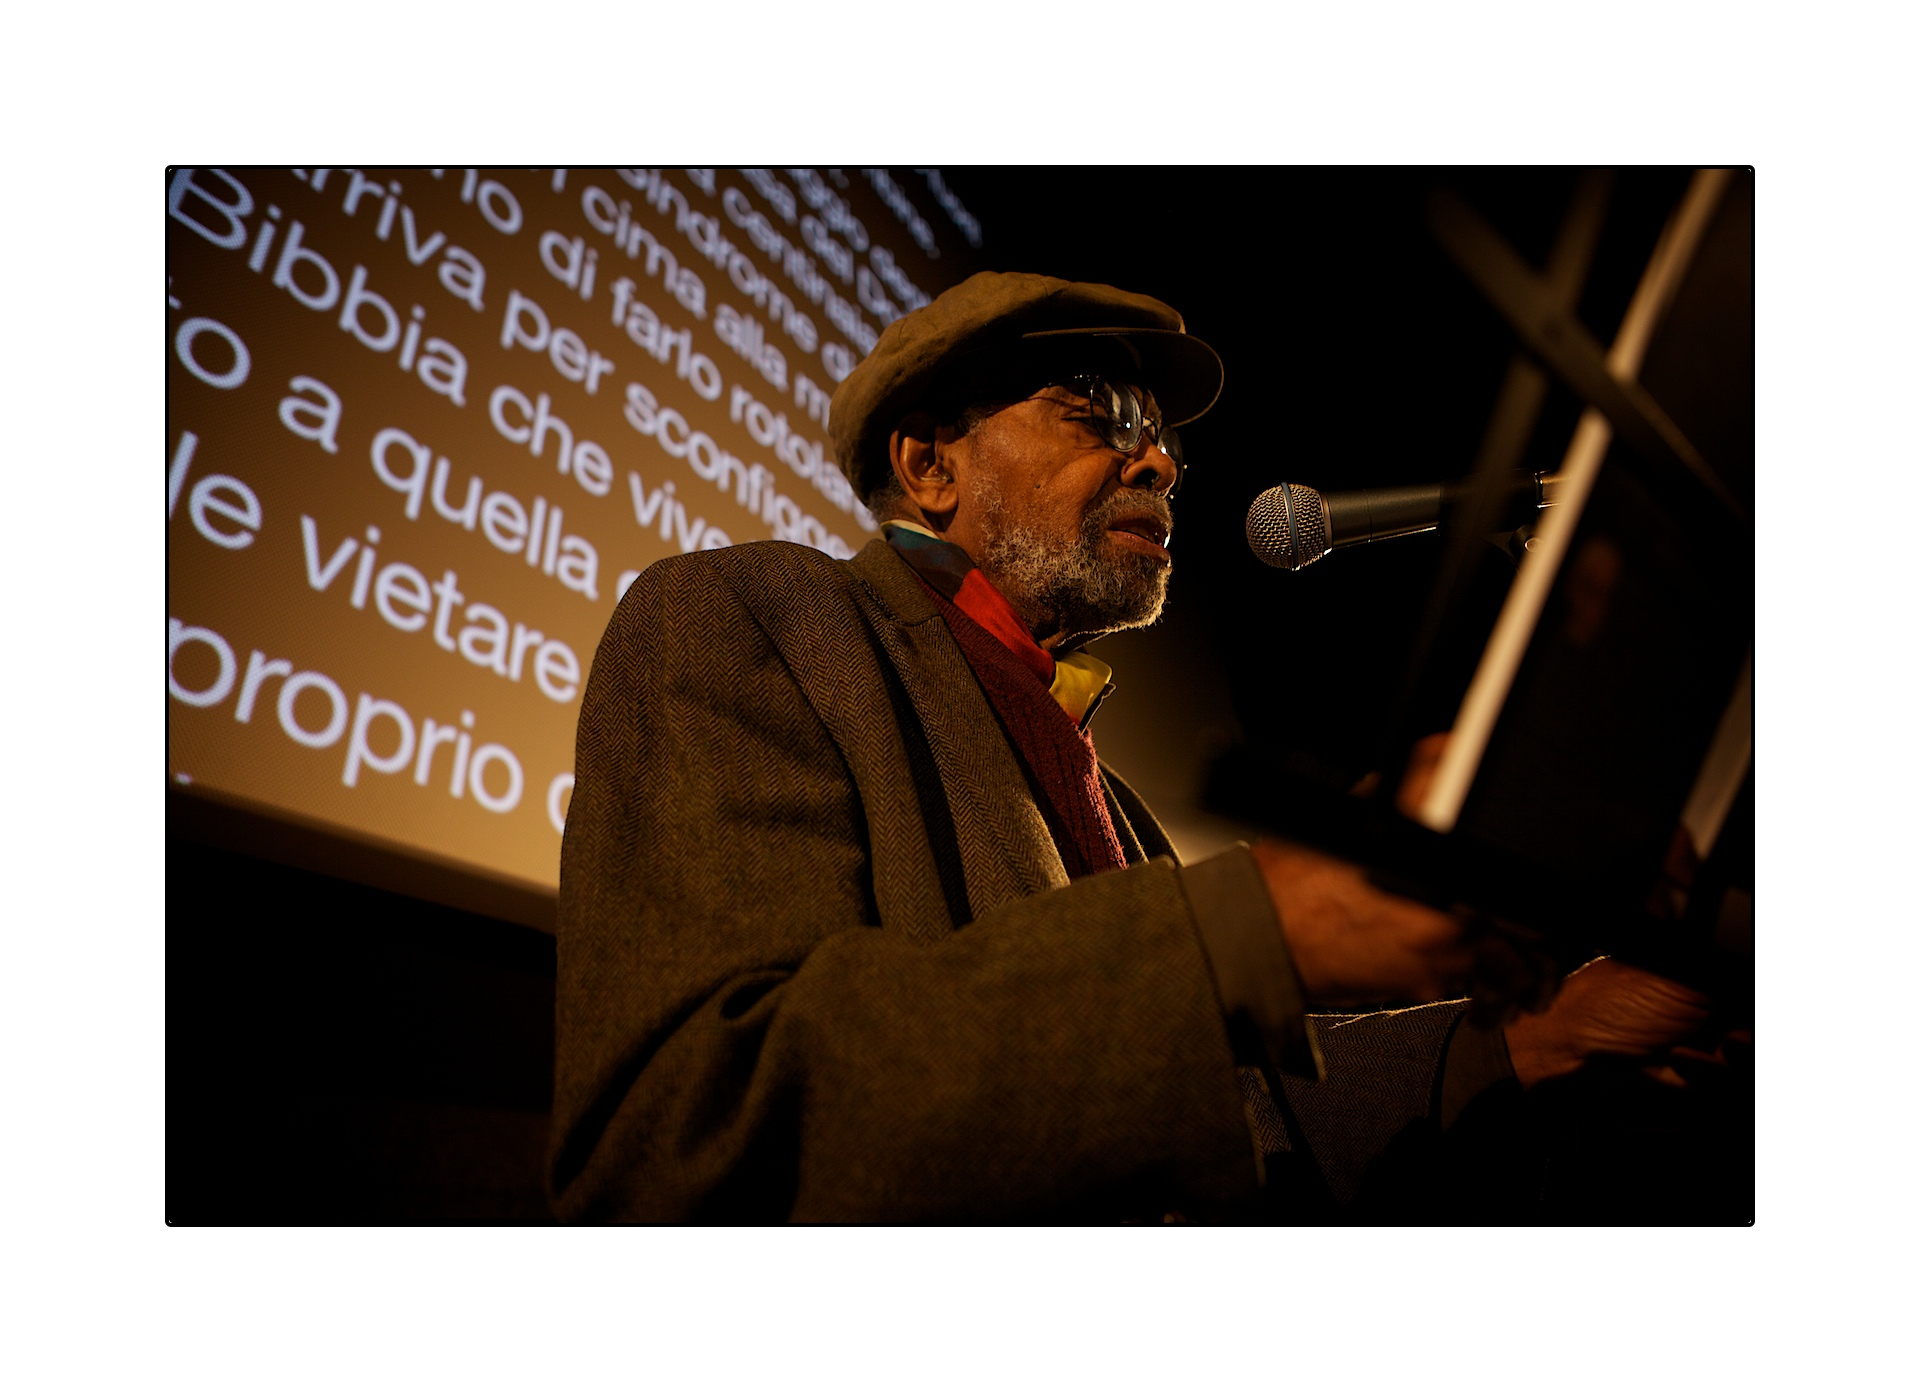 Amiri Baraka at Doctoclip 2013